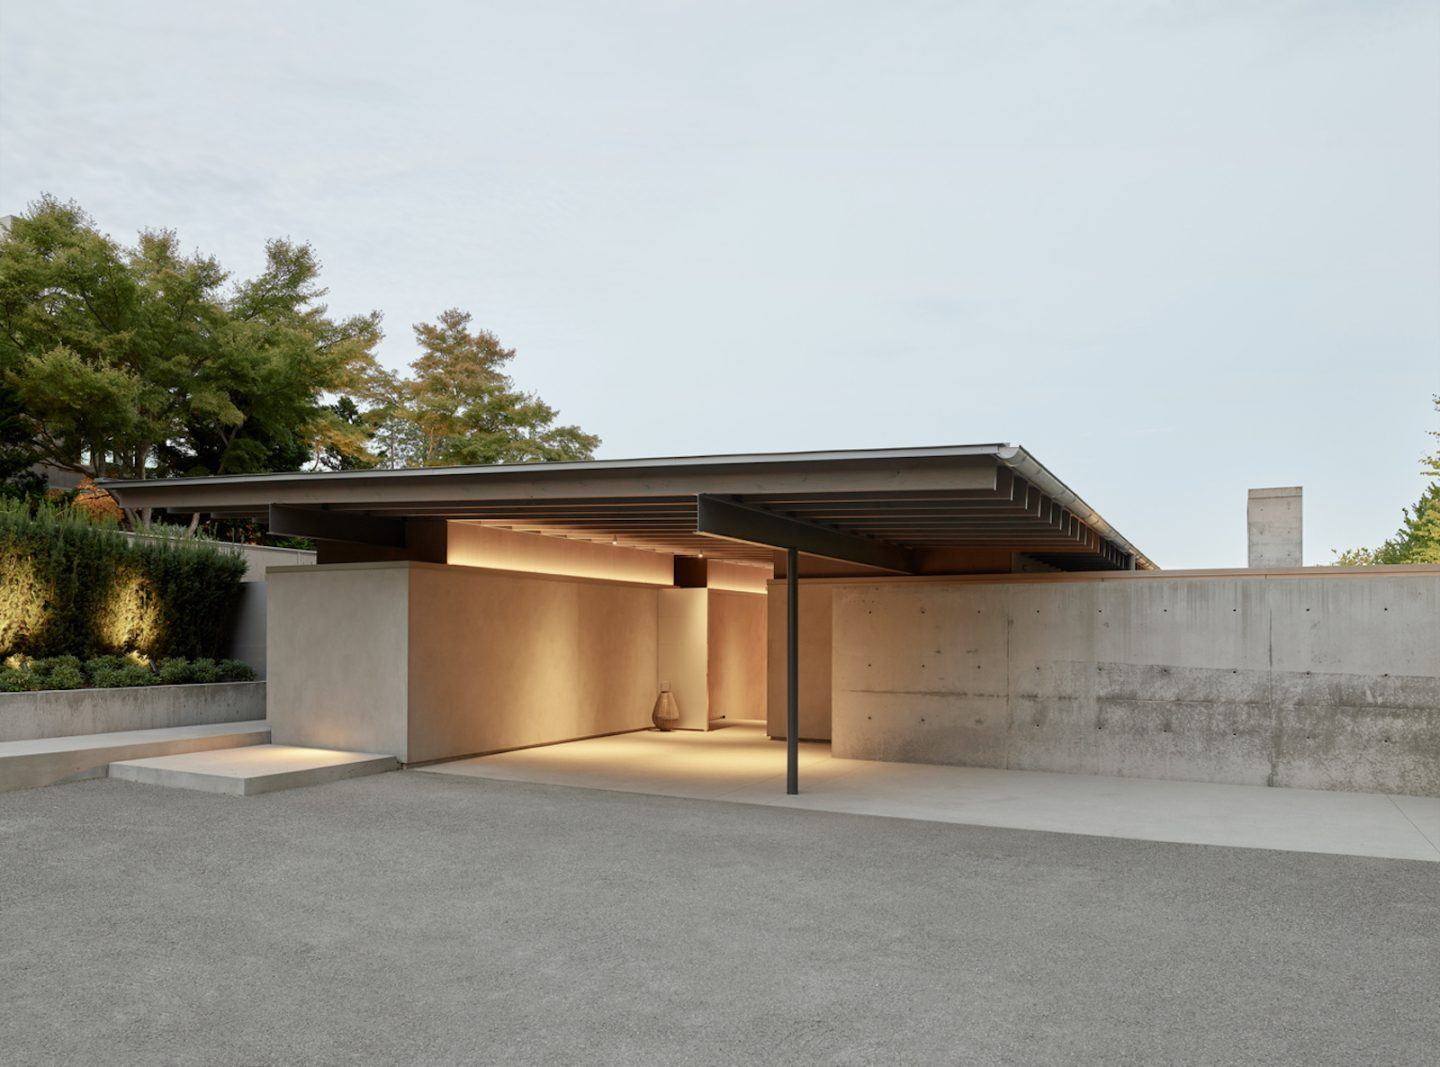 IGNANT-Architecture-Suyama-Peterson-Deguchi-The-Lake-House-003